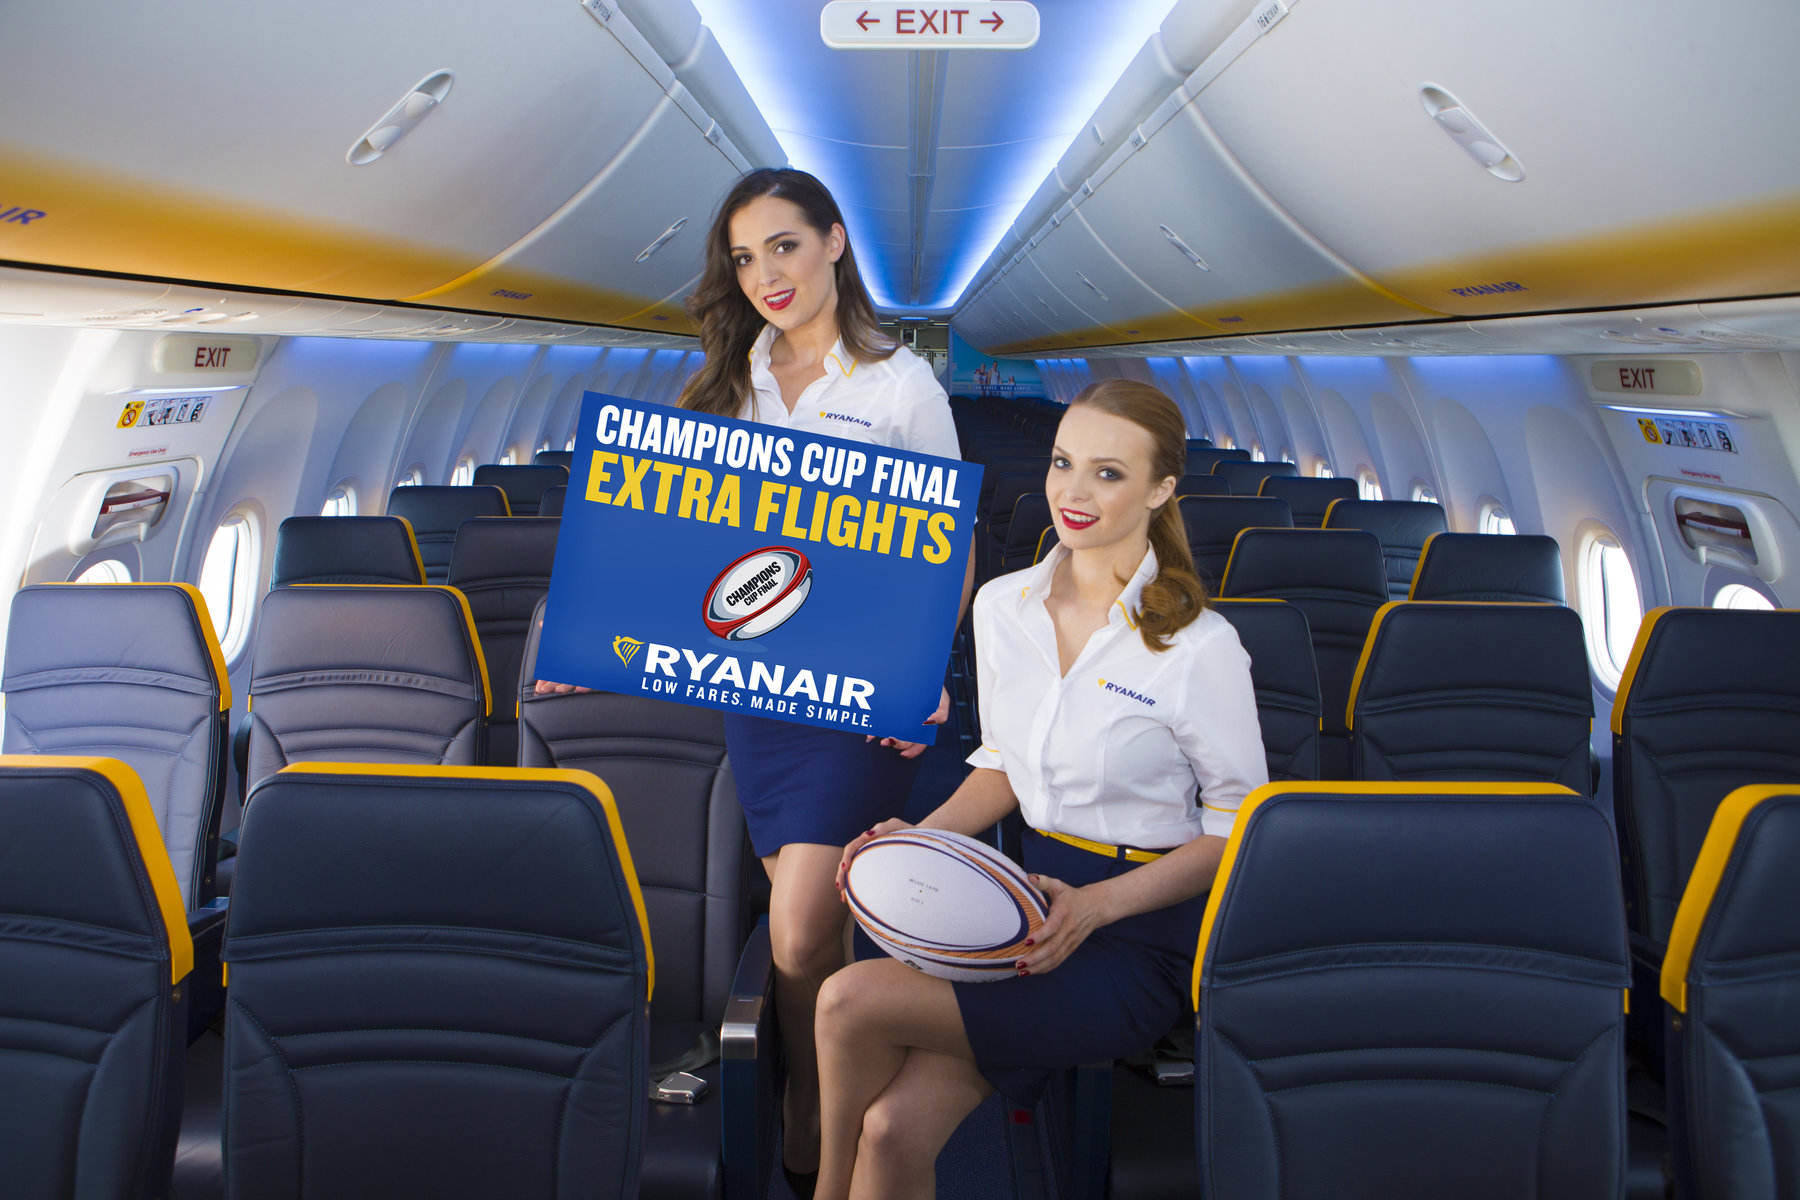 Ryanair puts on extra flights to European rugby final for confident Leinster and Munster fans